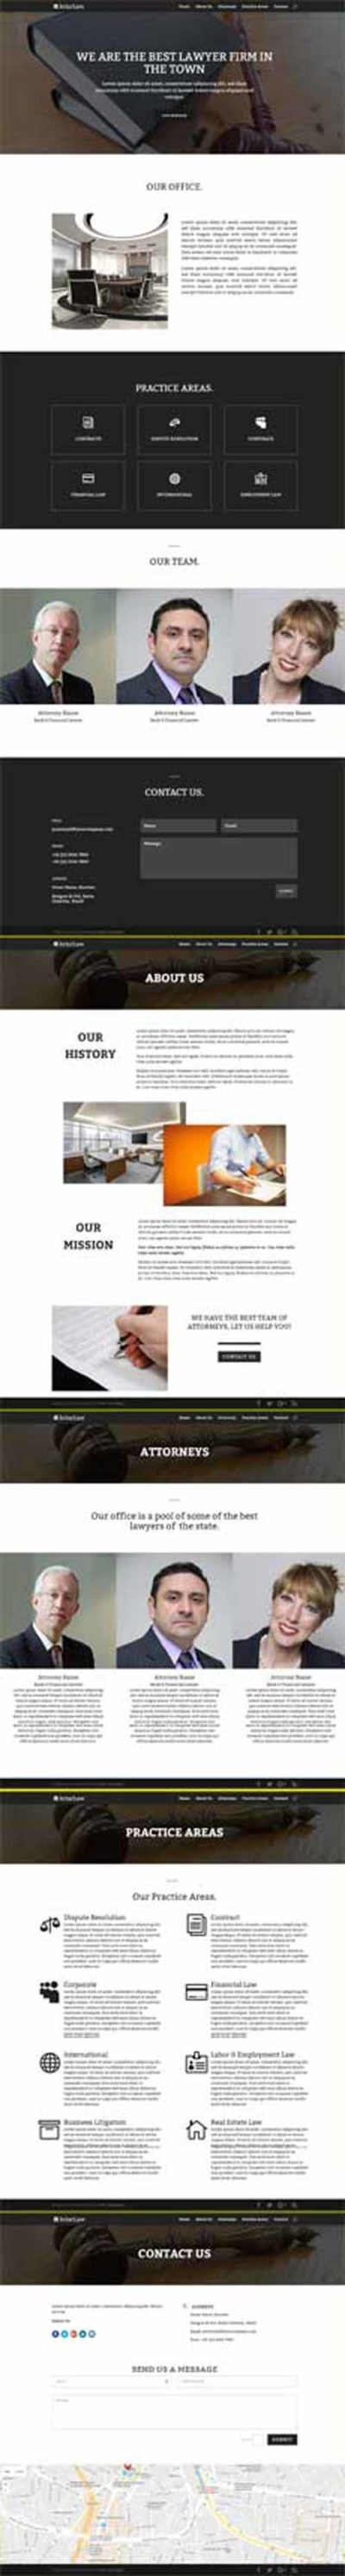 Divi Layout for lawyers